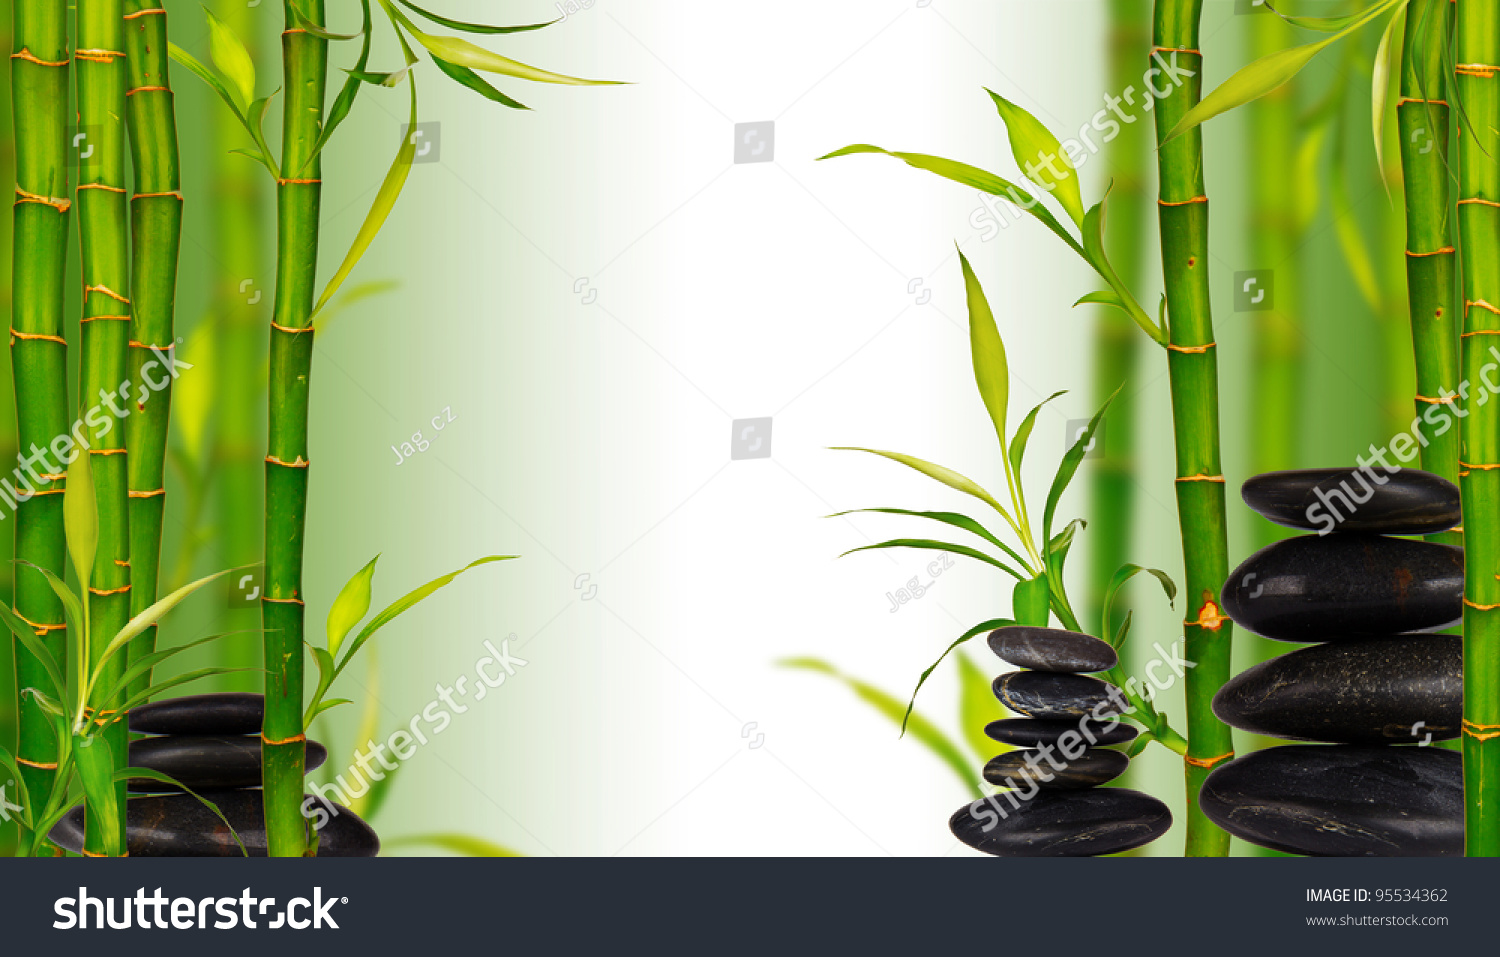 bamboo spa logo - photo #35